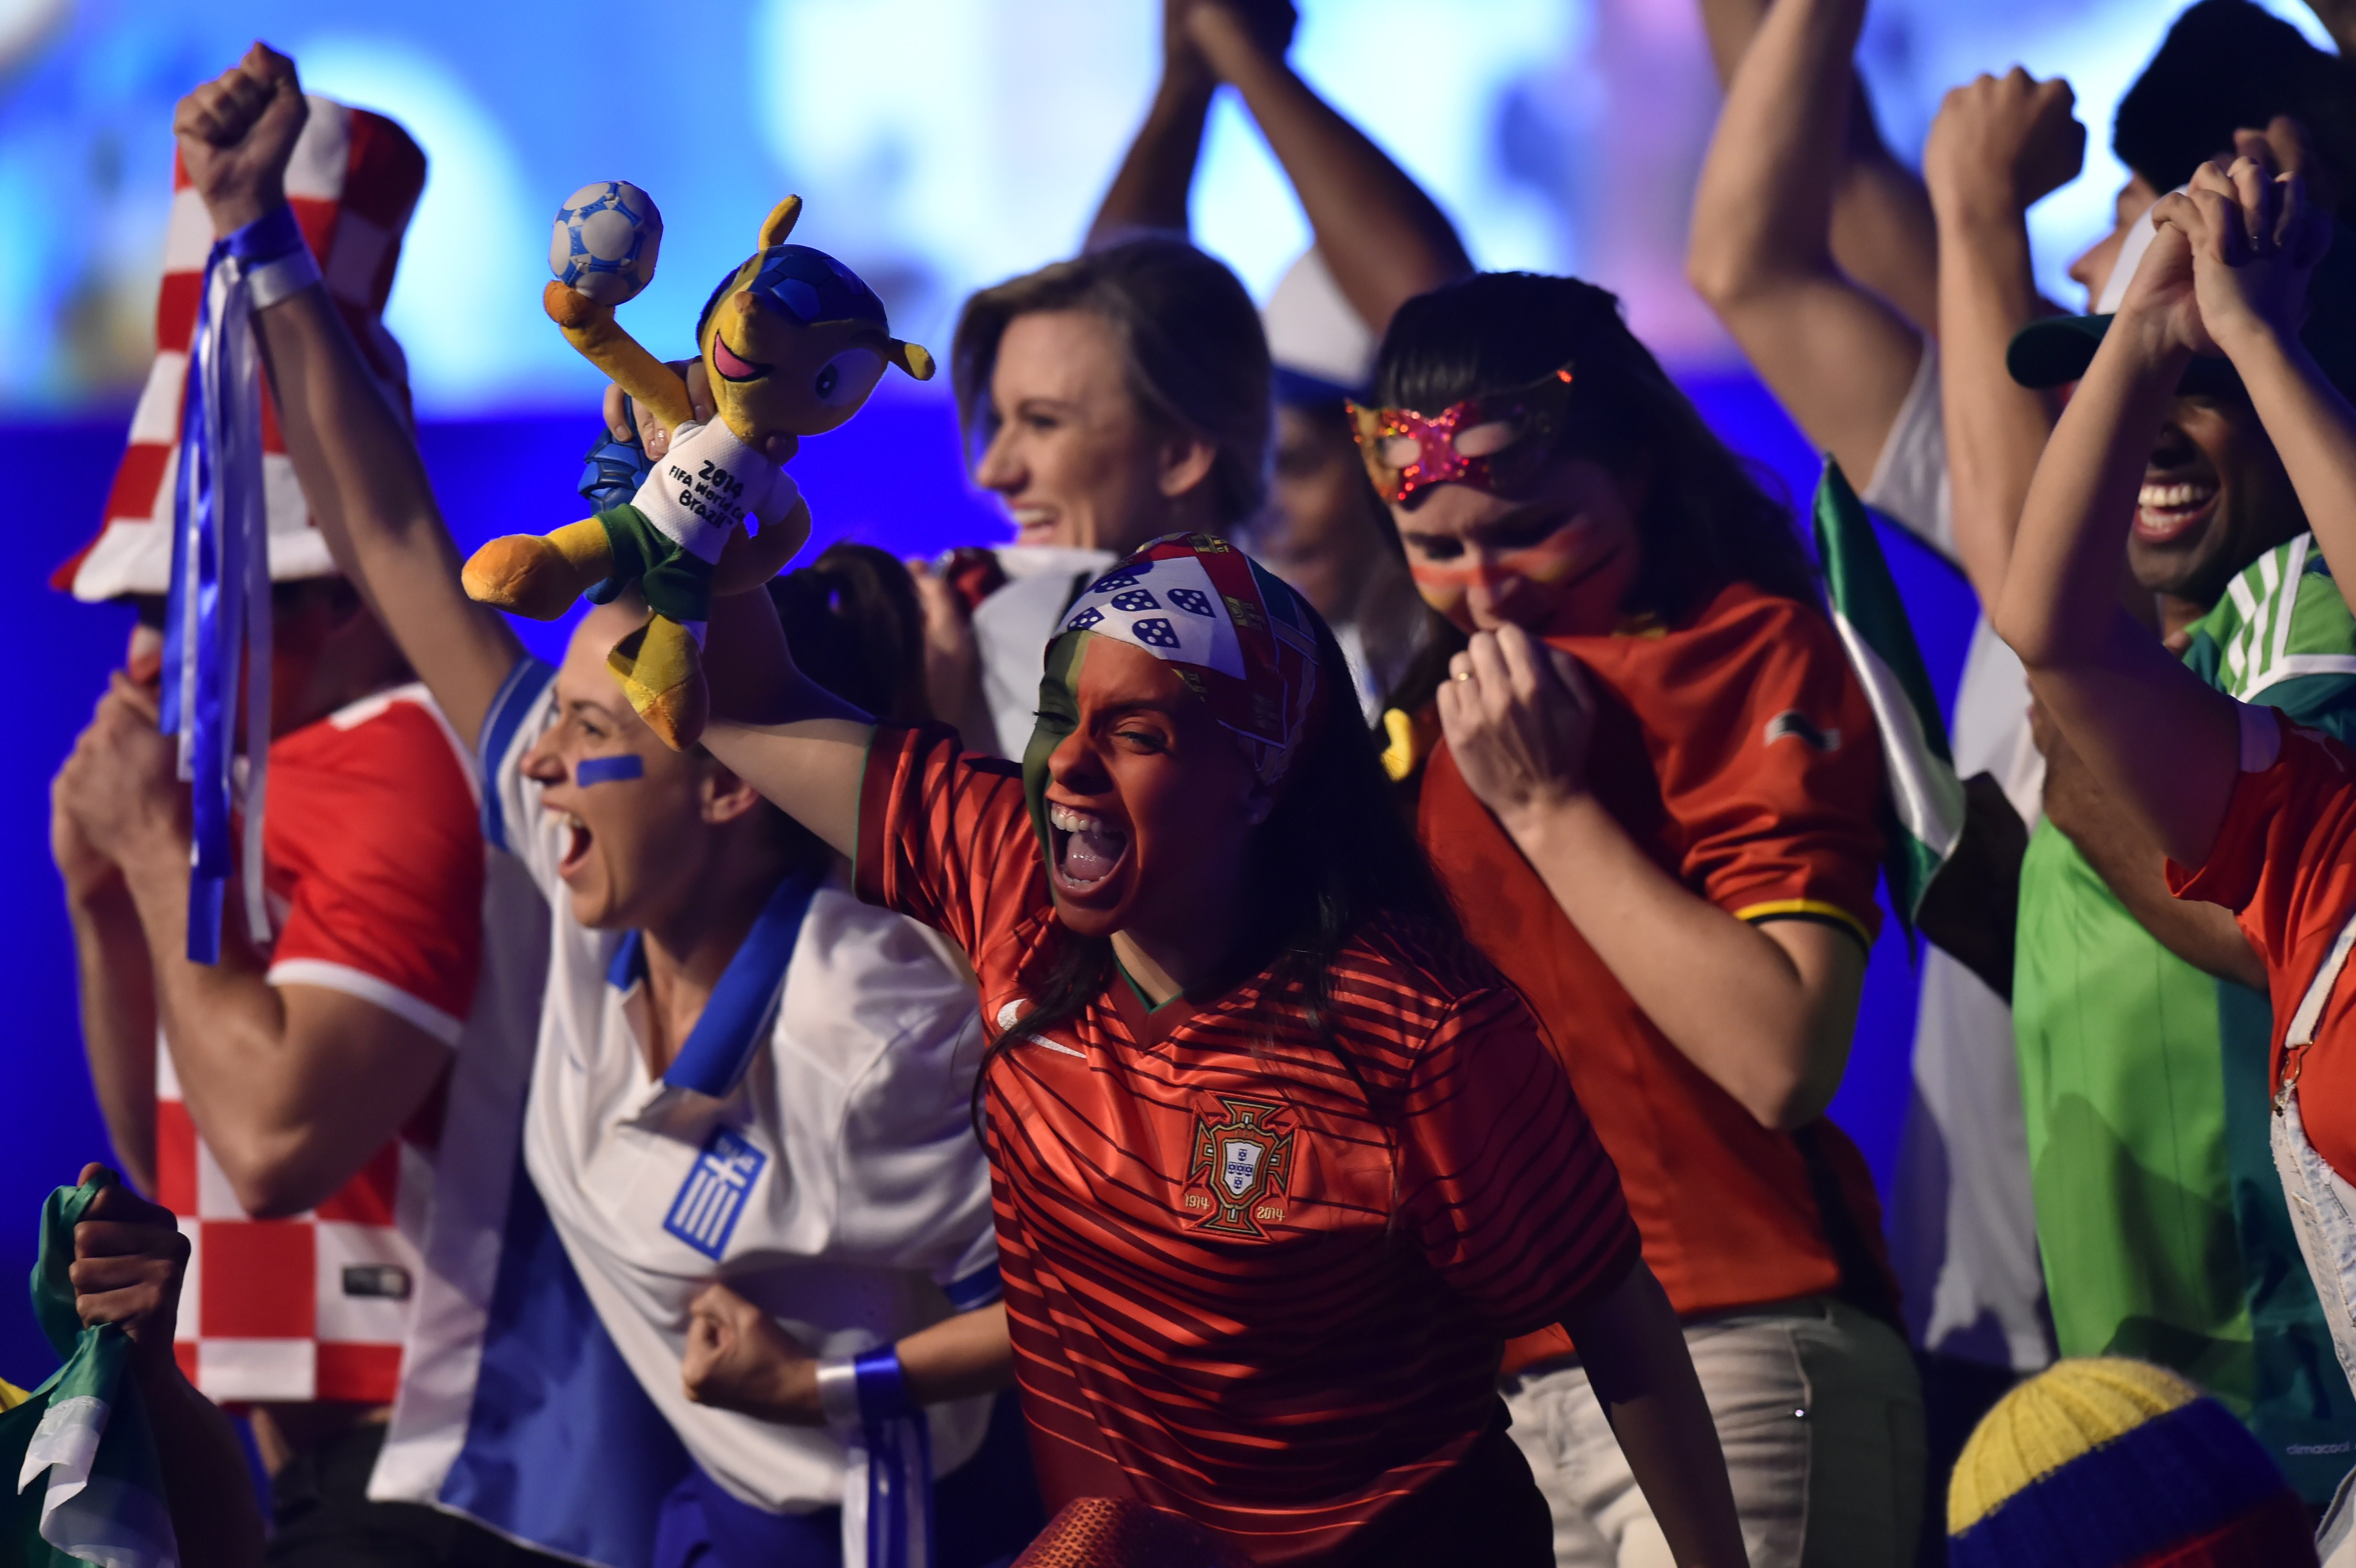 Performers dressed as football fans dance on stage during the opening of the FIFA Congress in Sao Paulo on June 10, 2014, two days before the opening match of the 2014 FIFA World Cup in Brazil.